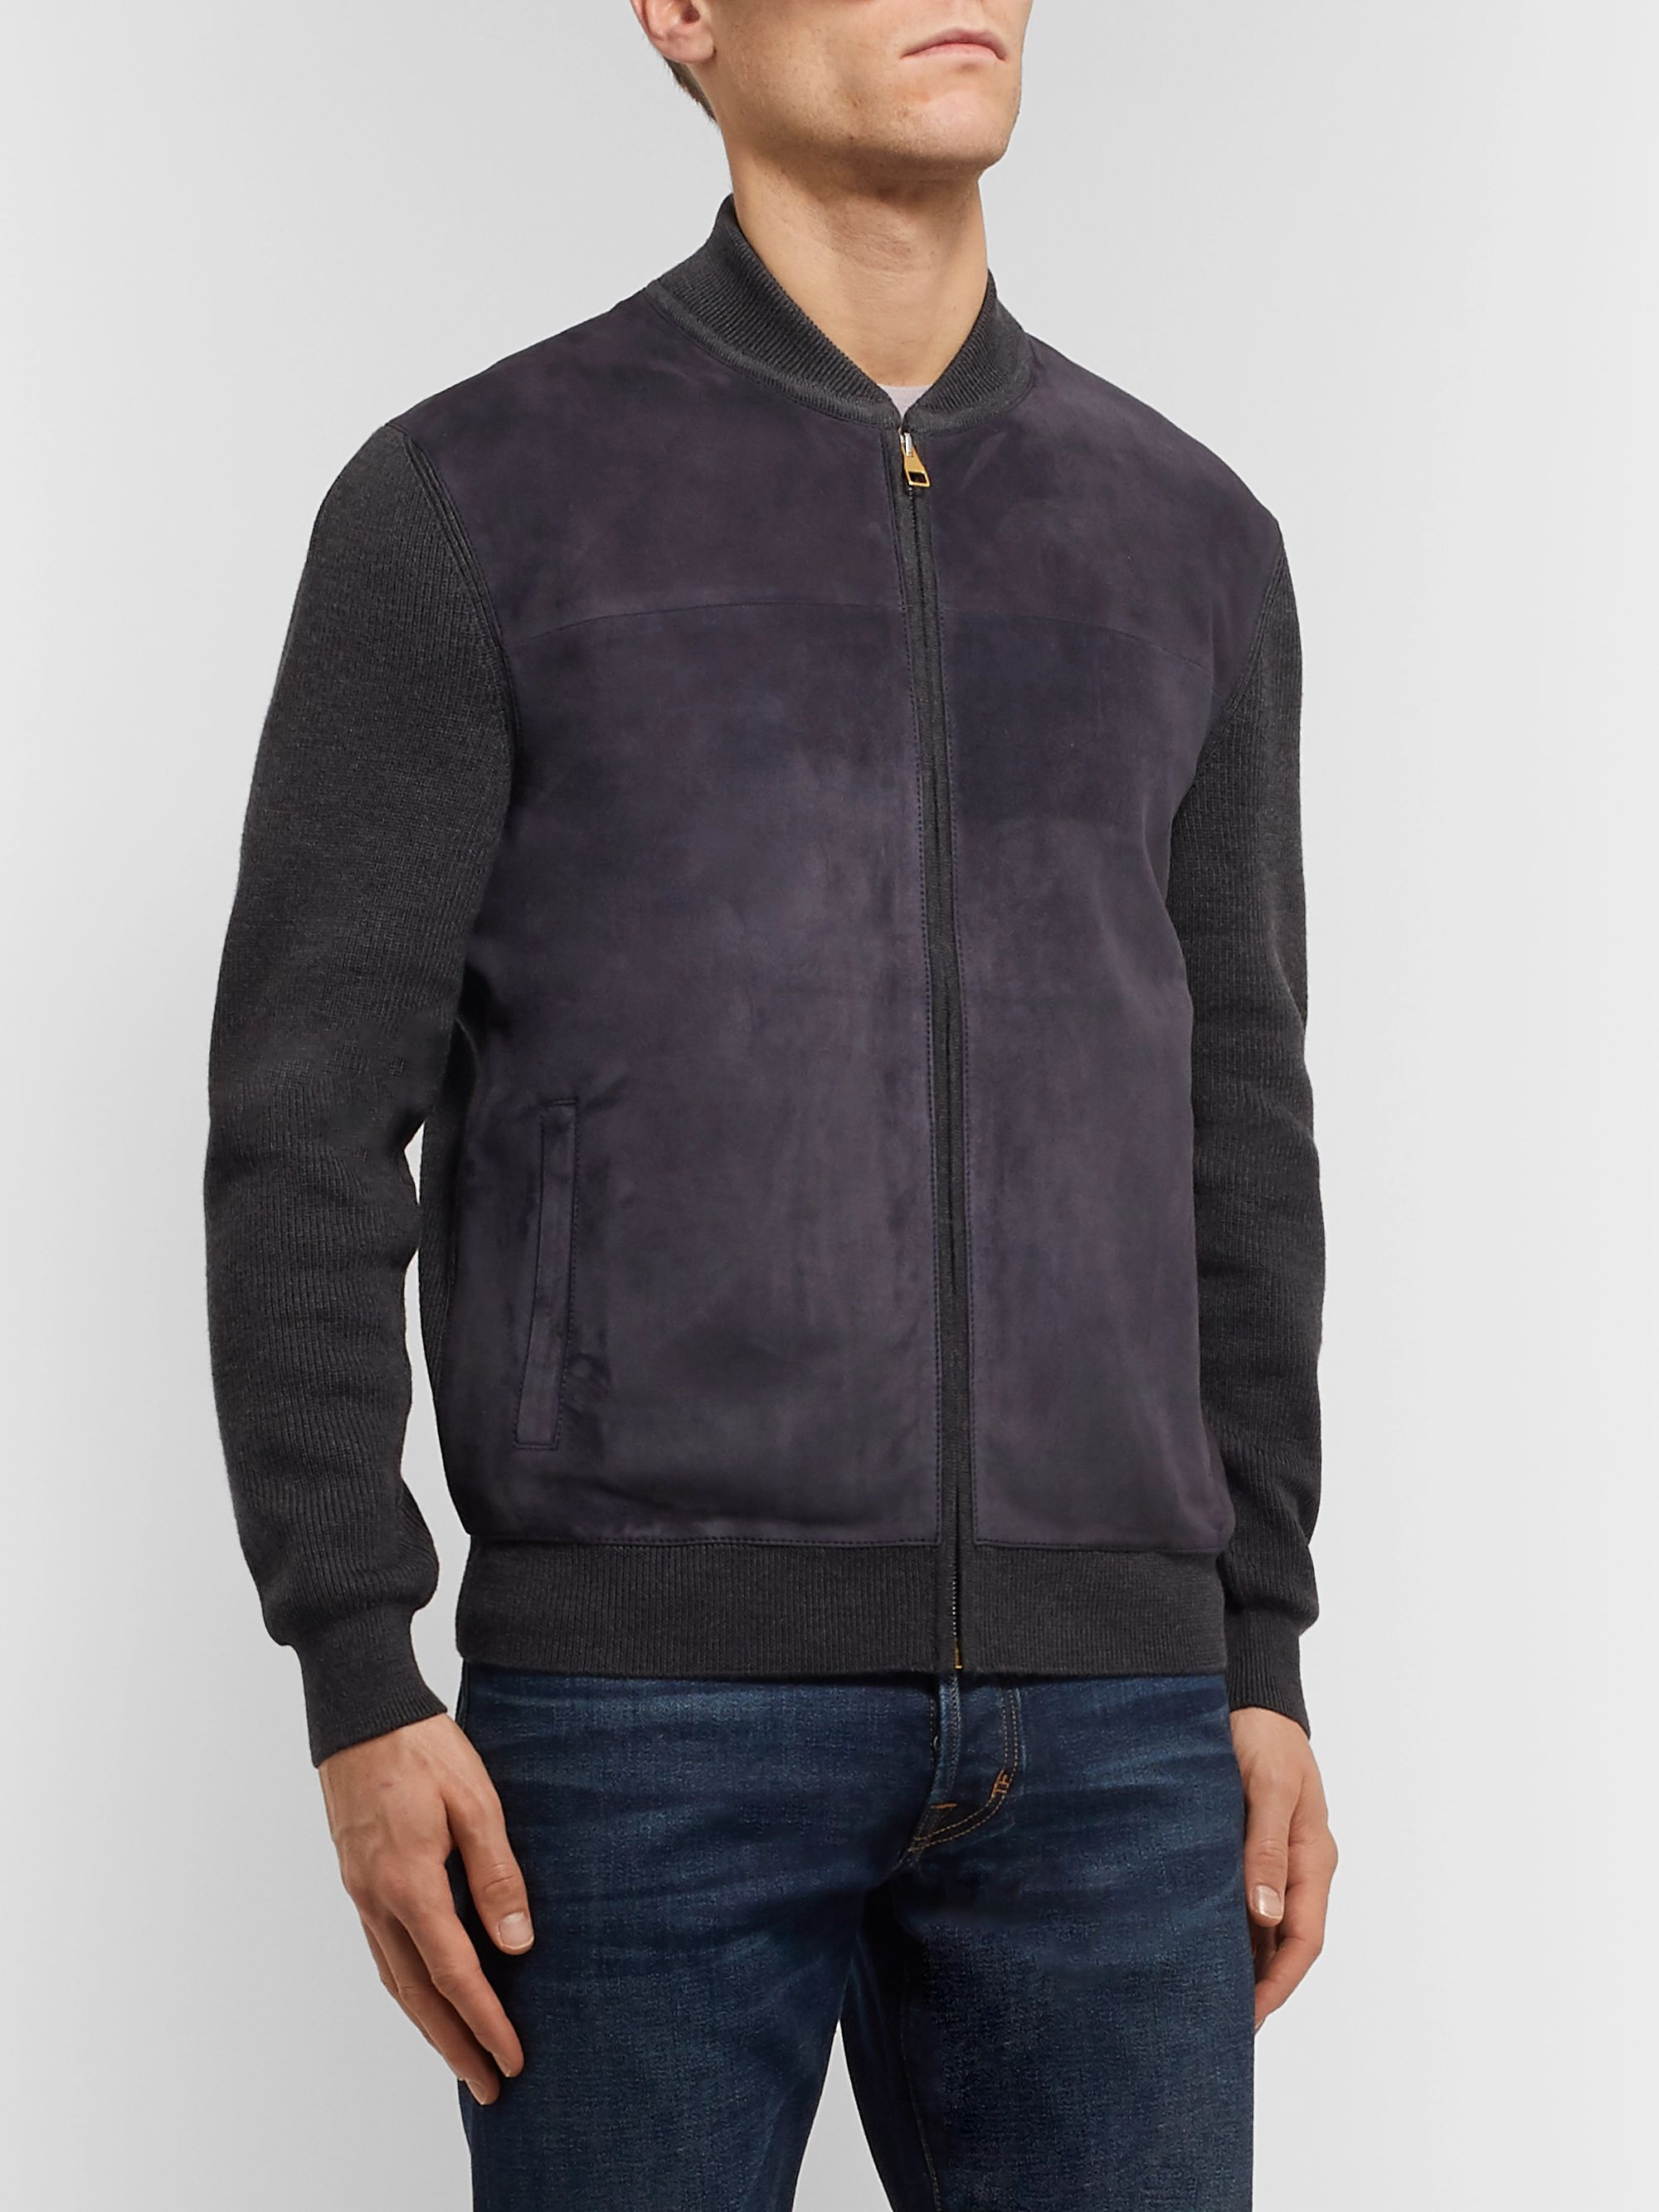 Dunhill Ribbed Wool and Suede Bomber Jacket